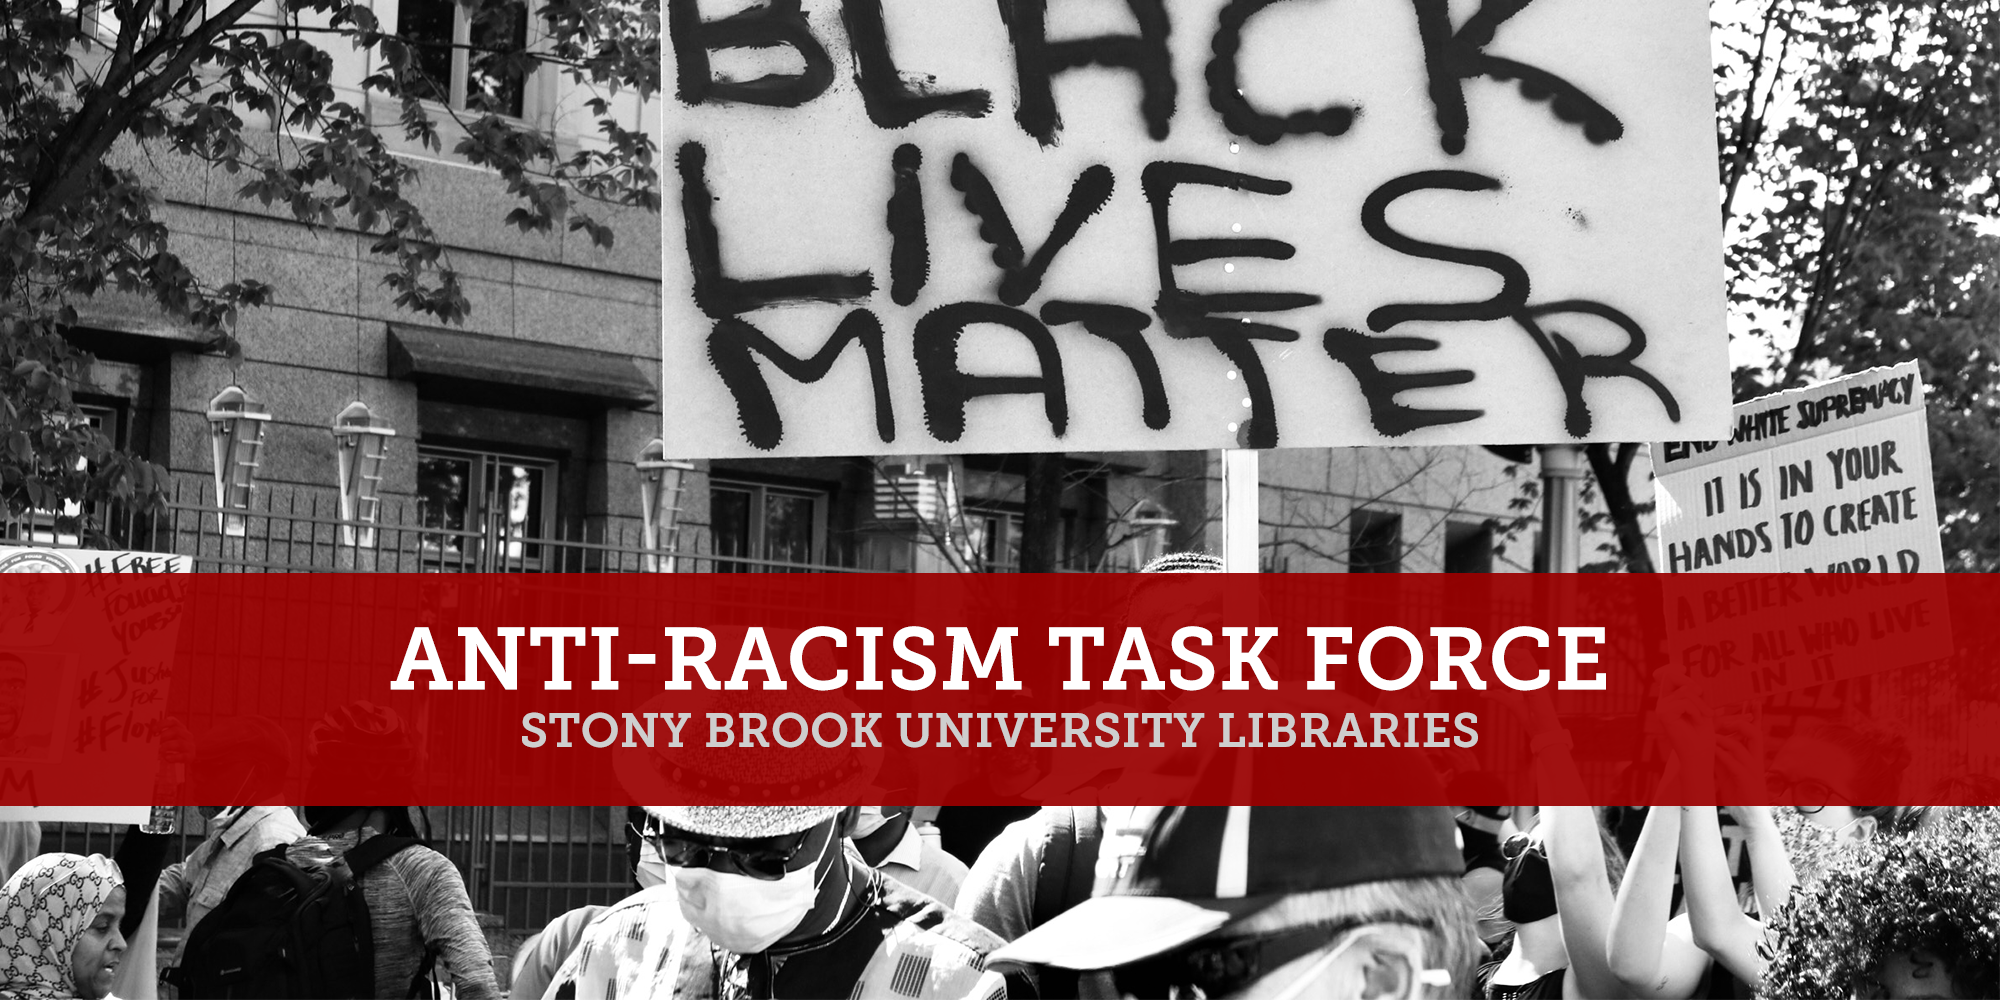 Text reading: Anti-Racism Task Force, Stony Brook University Libraries, overlaid on photo of protestors holding Black Lives Matter signs